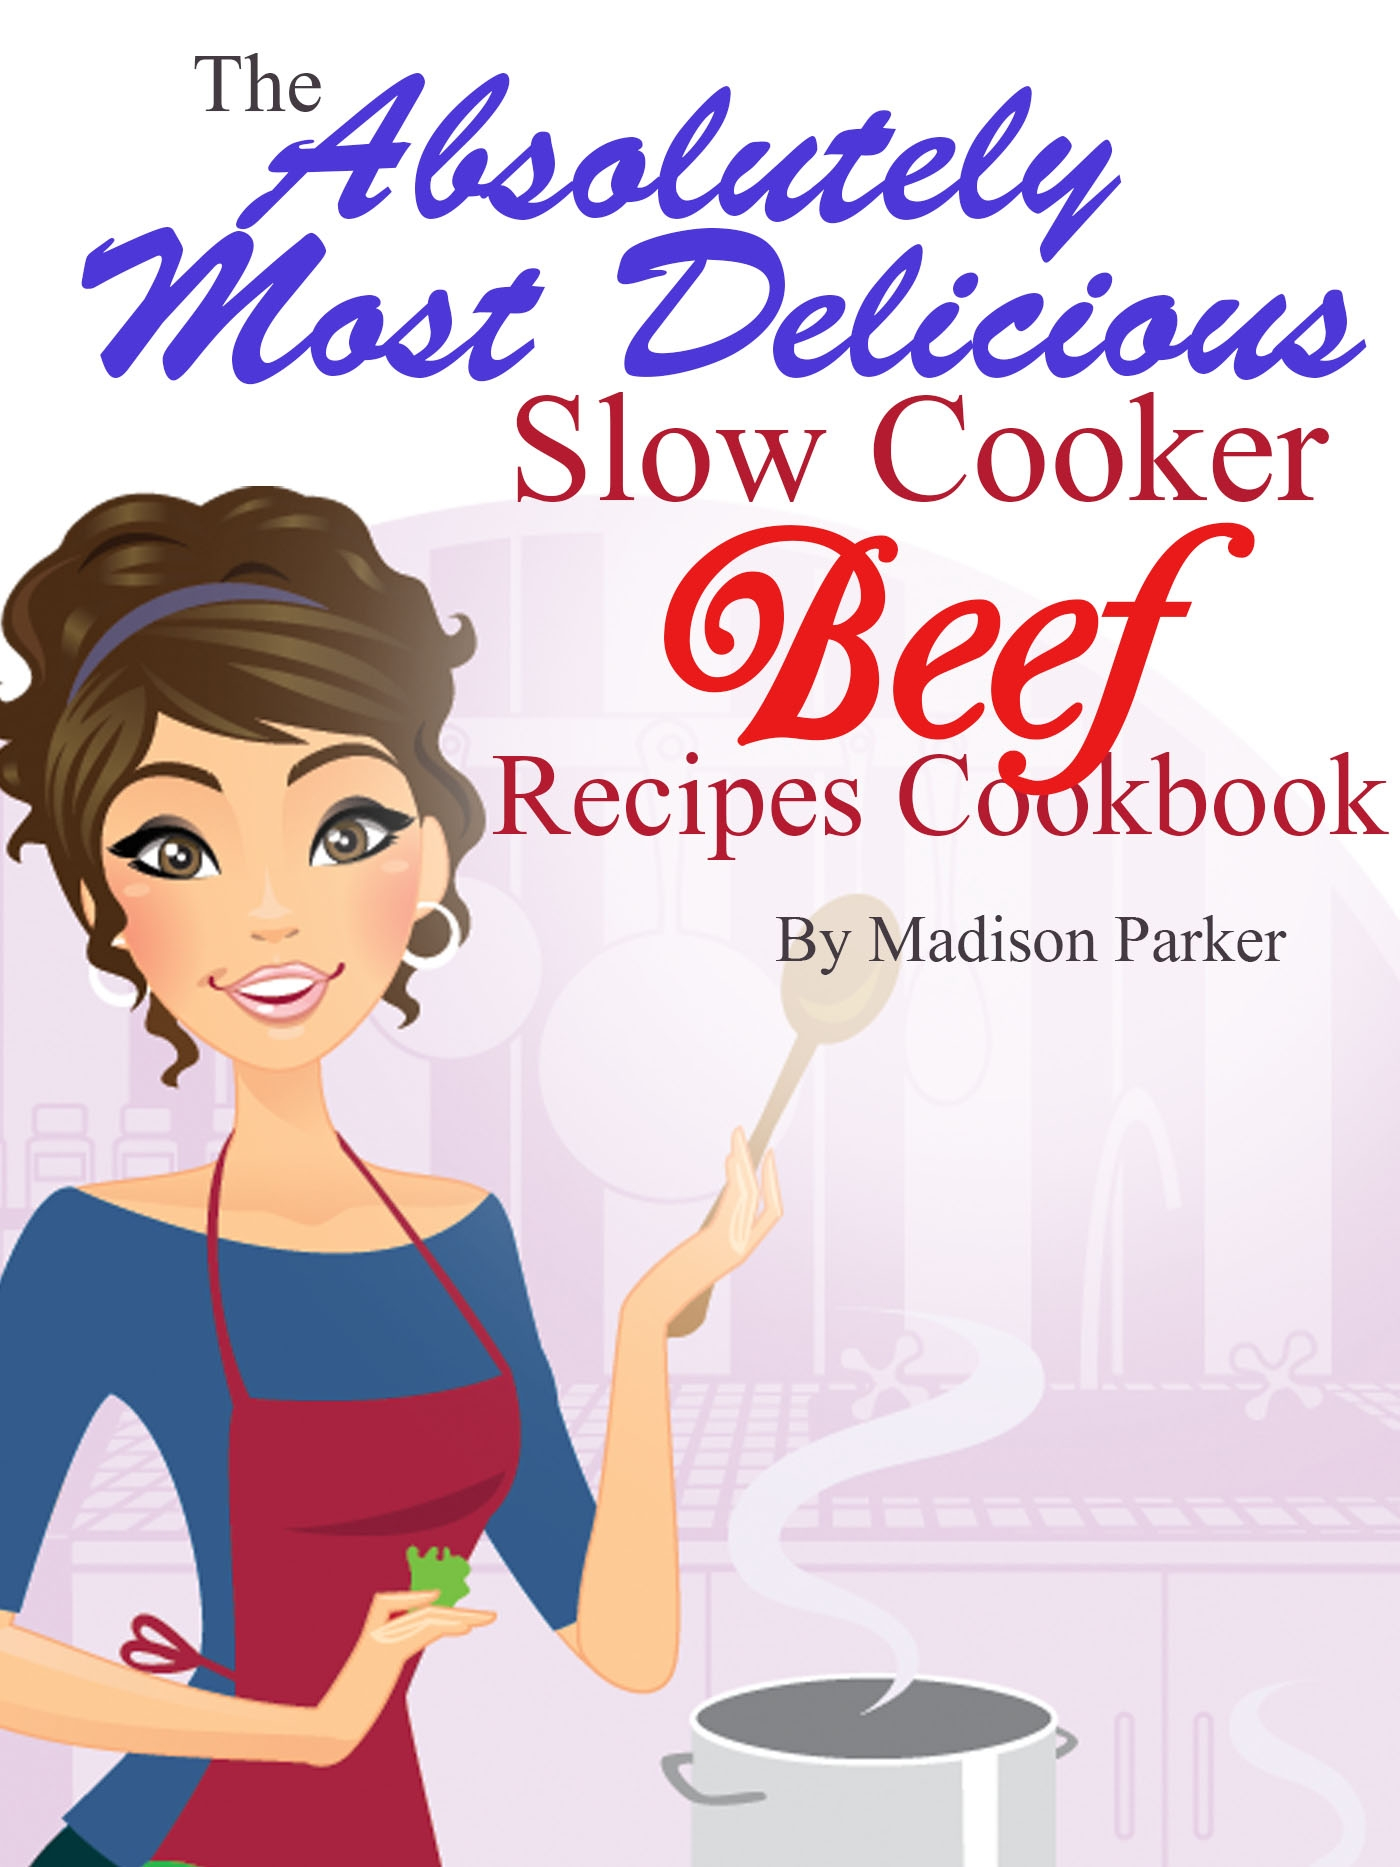 Madison Parker - The Absolutely Most Delicious Slow Cooker Beef Recipes Cookbook